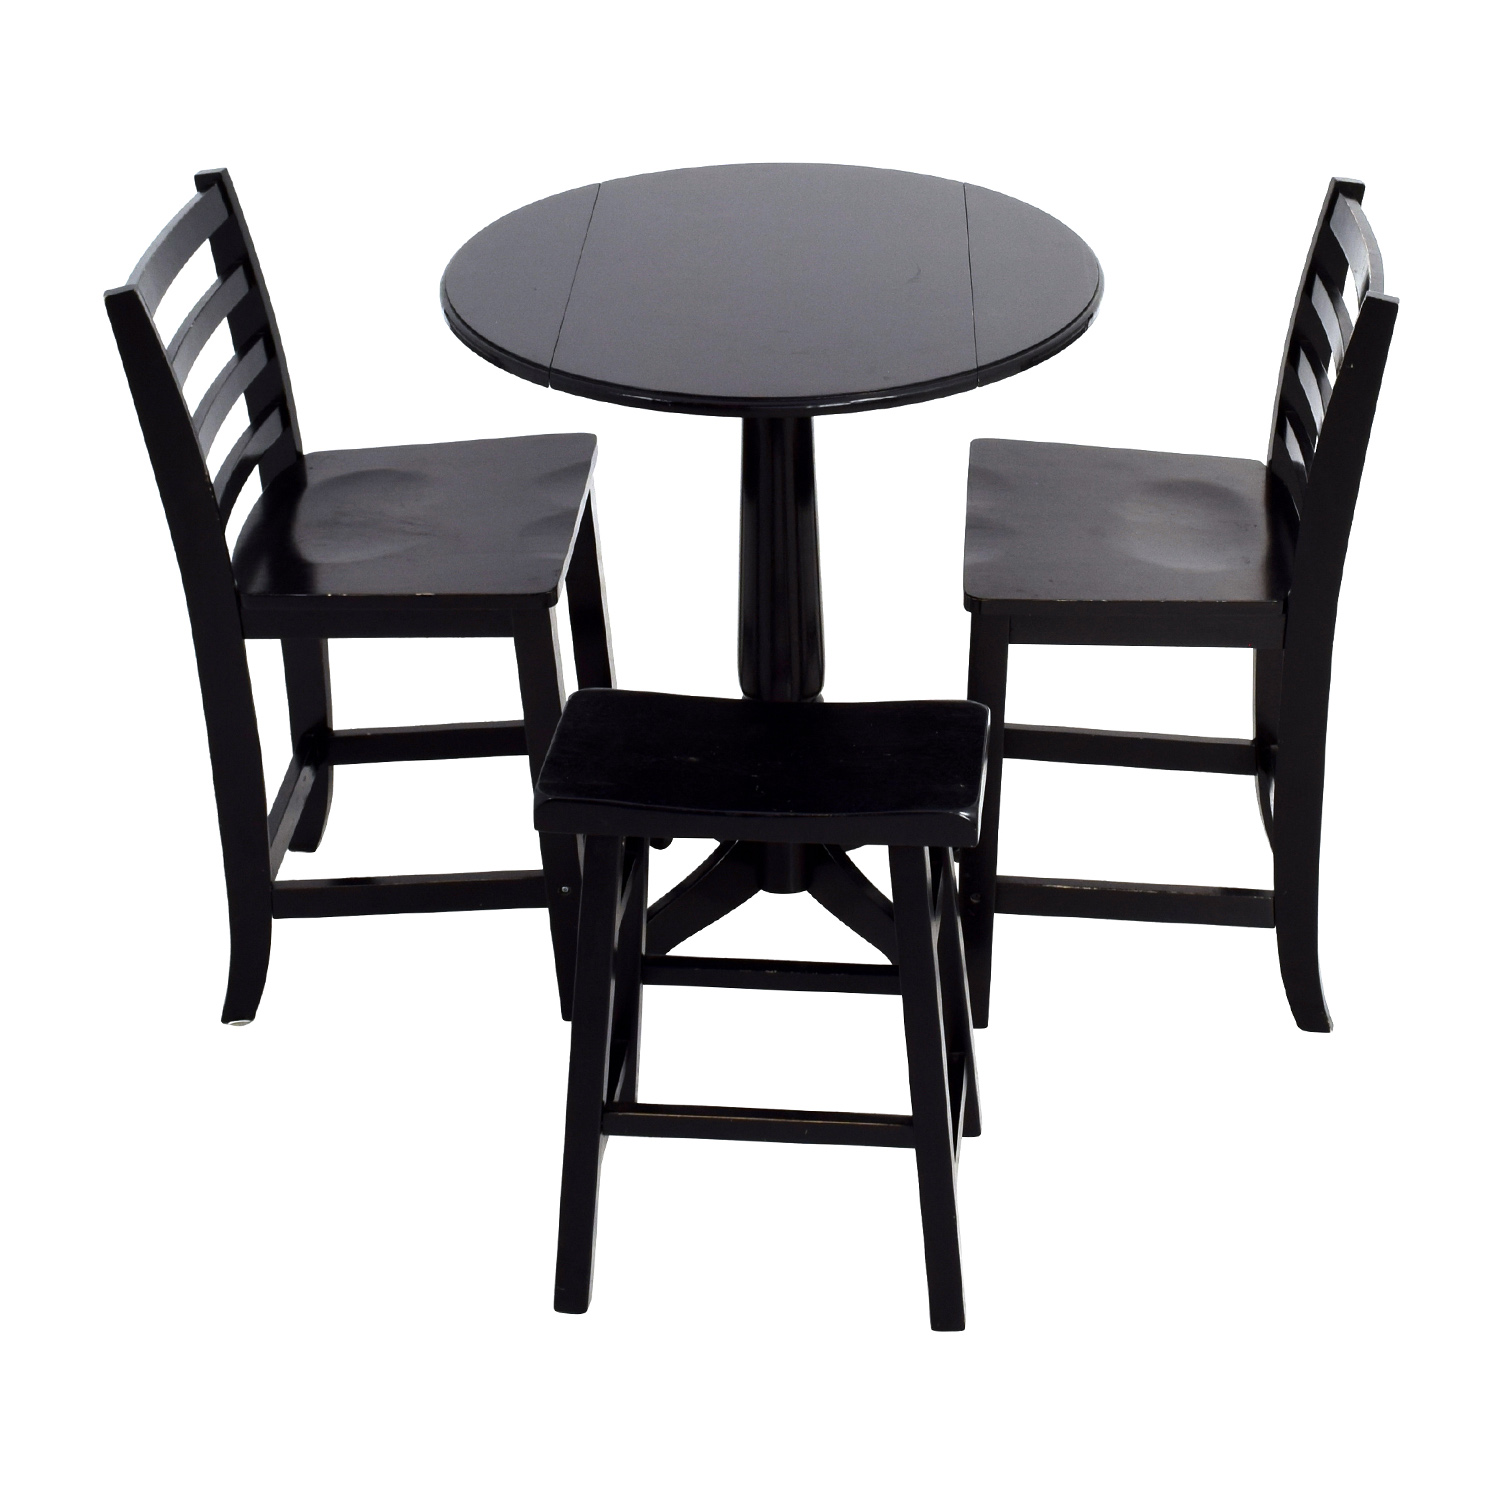 59 off counter black round table with chairs and stool for Buy round table